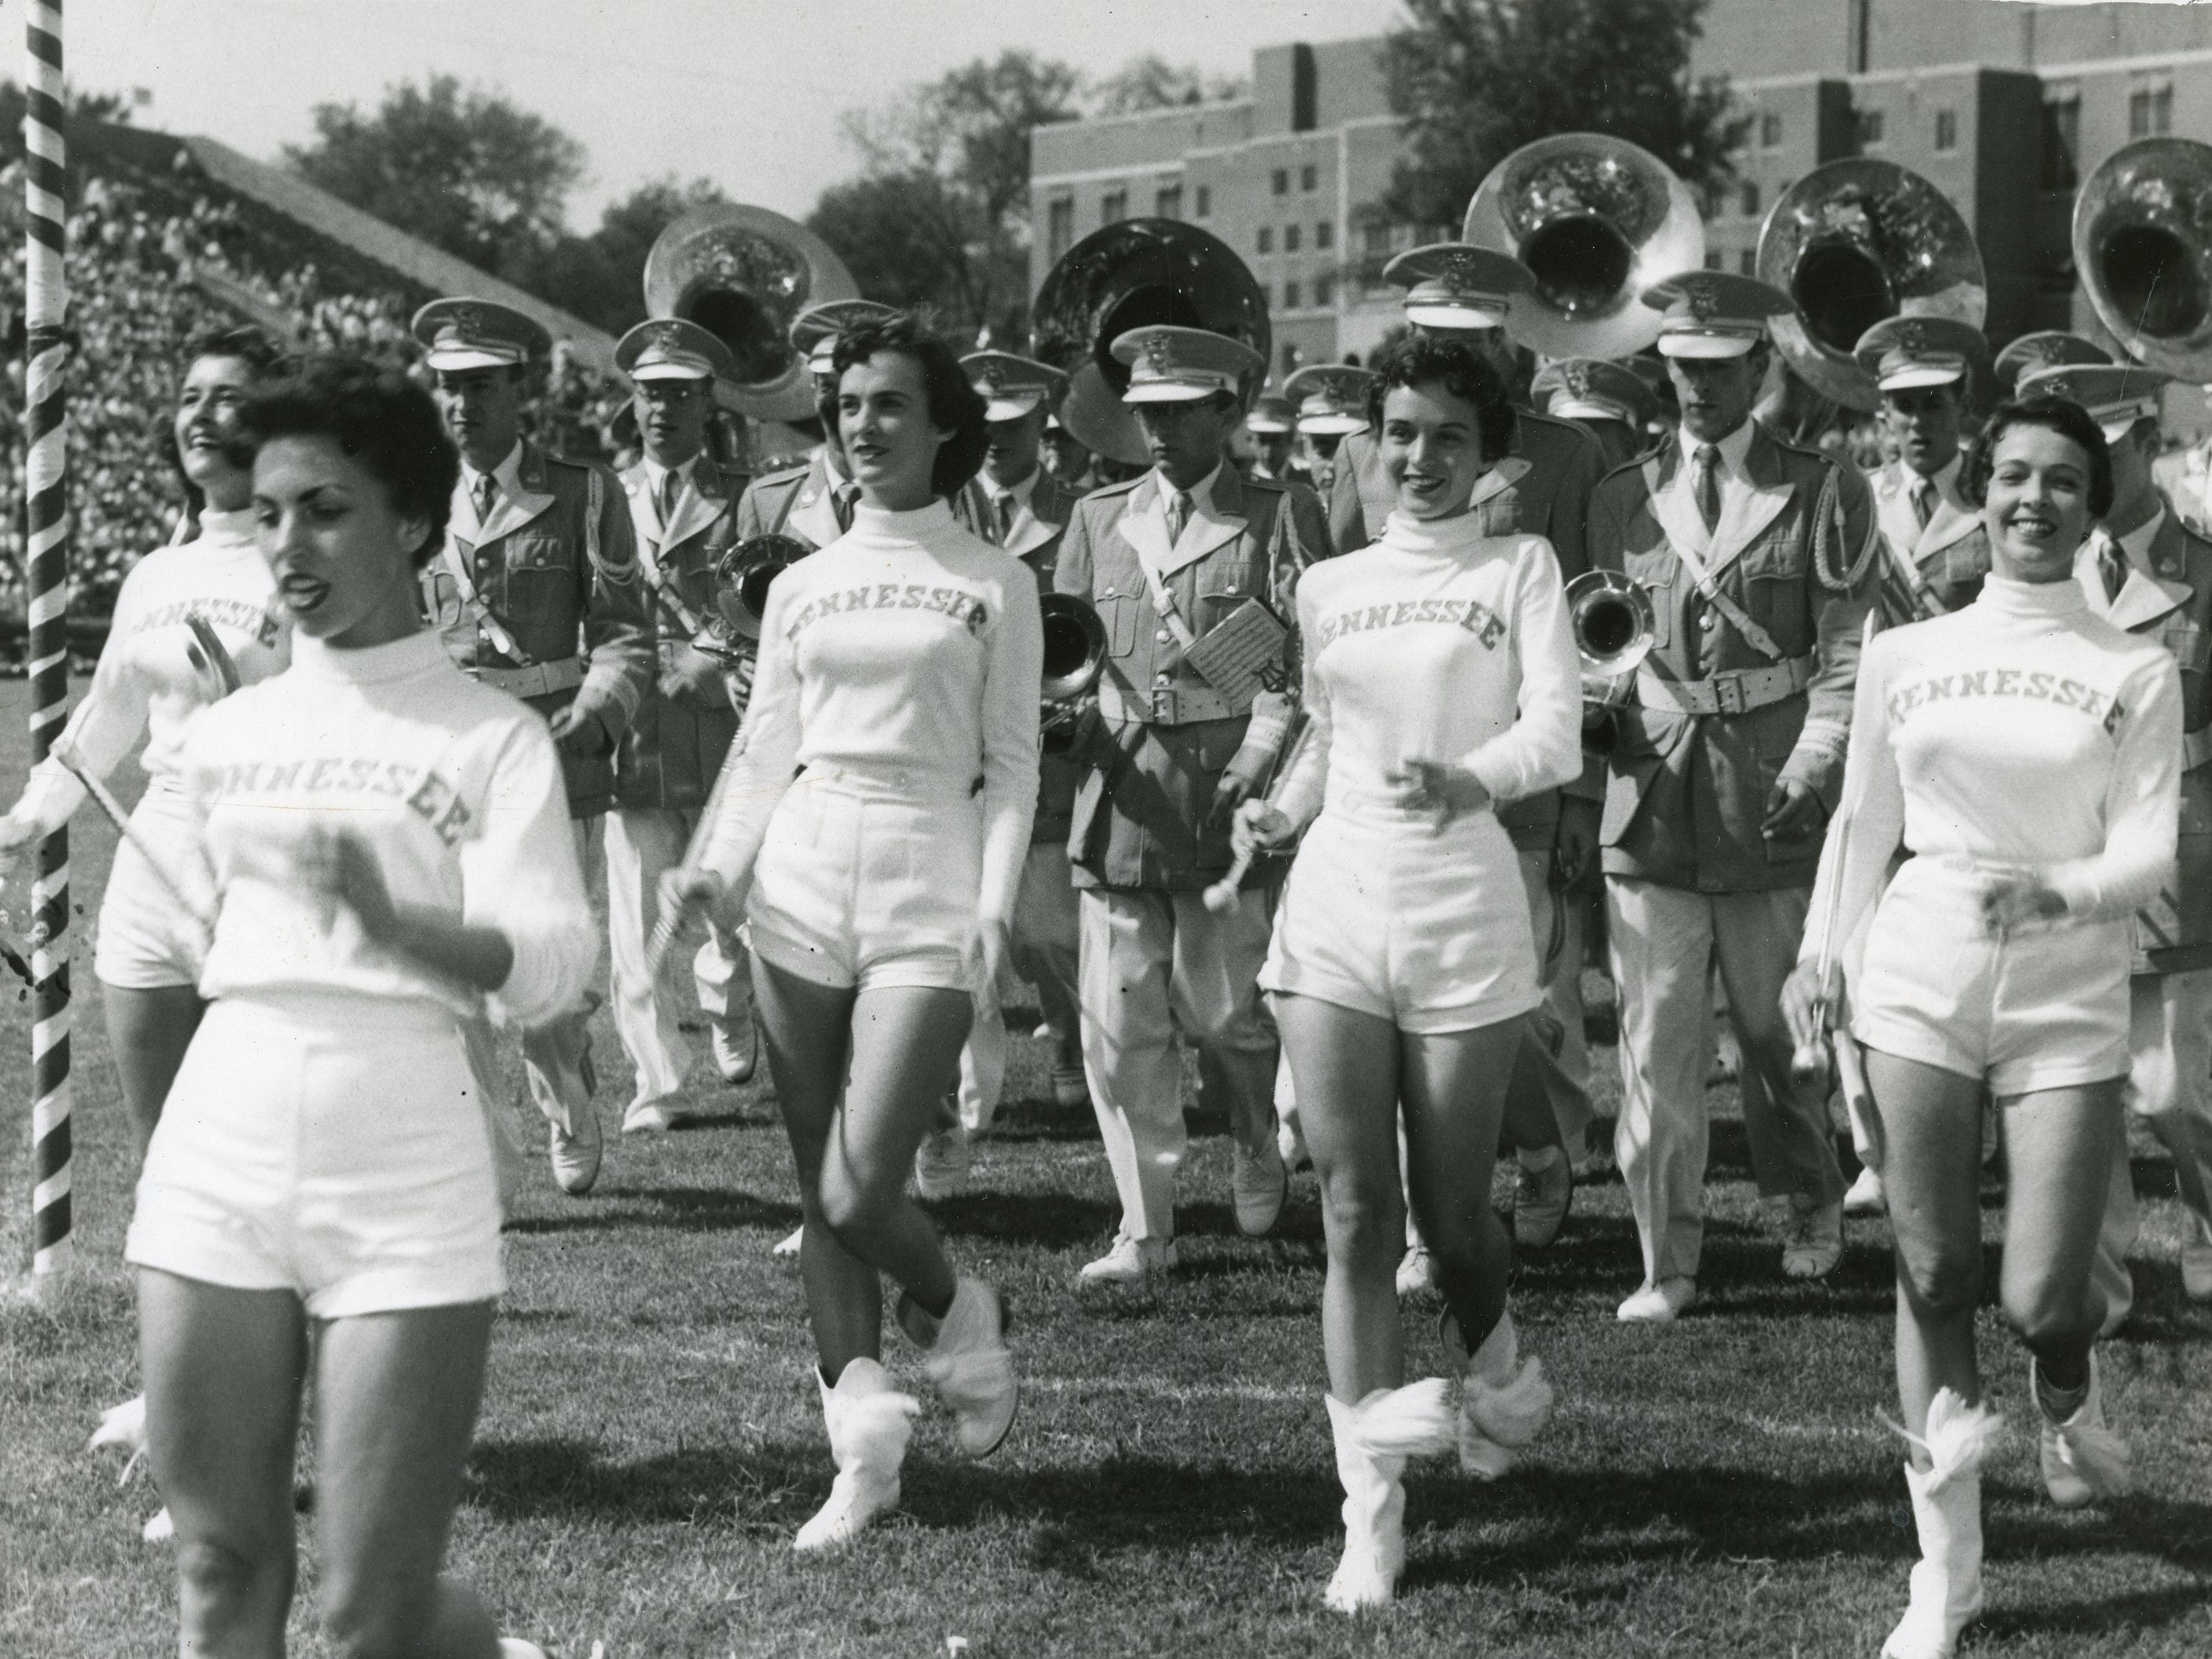 """In 1955 the majorettes were called """"High Steppers"""" Pictured here with the band are Sandee Hardee, Anne Dale Guinn, Carolyn Johnson, Luch Hatmaker and Mary Lee Thomas."""